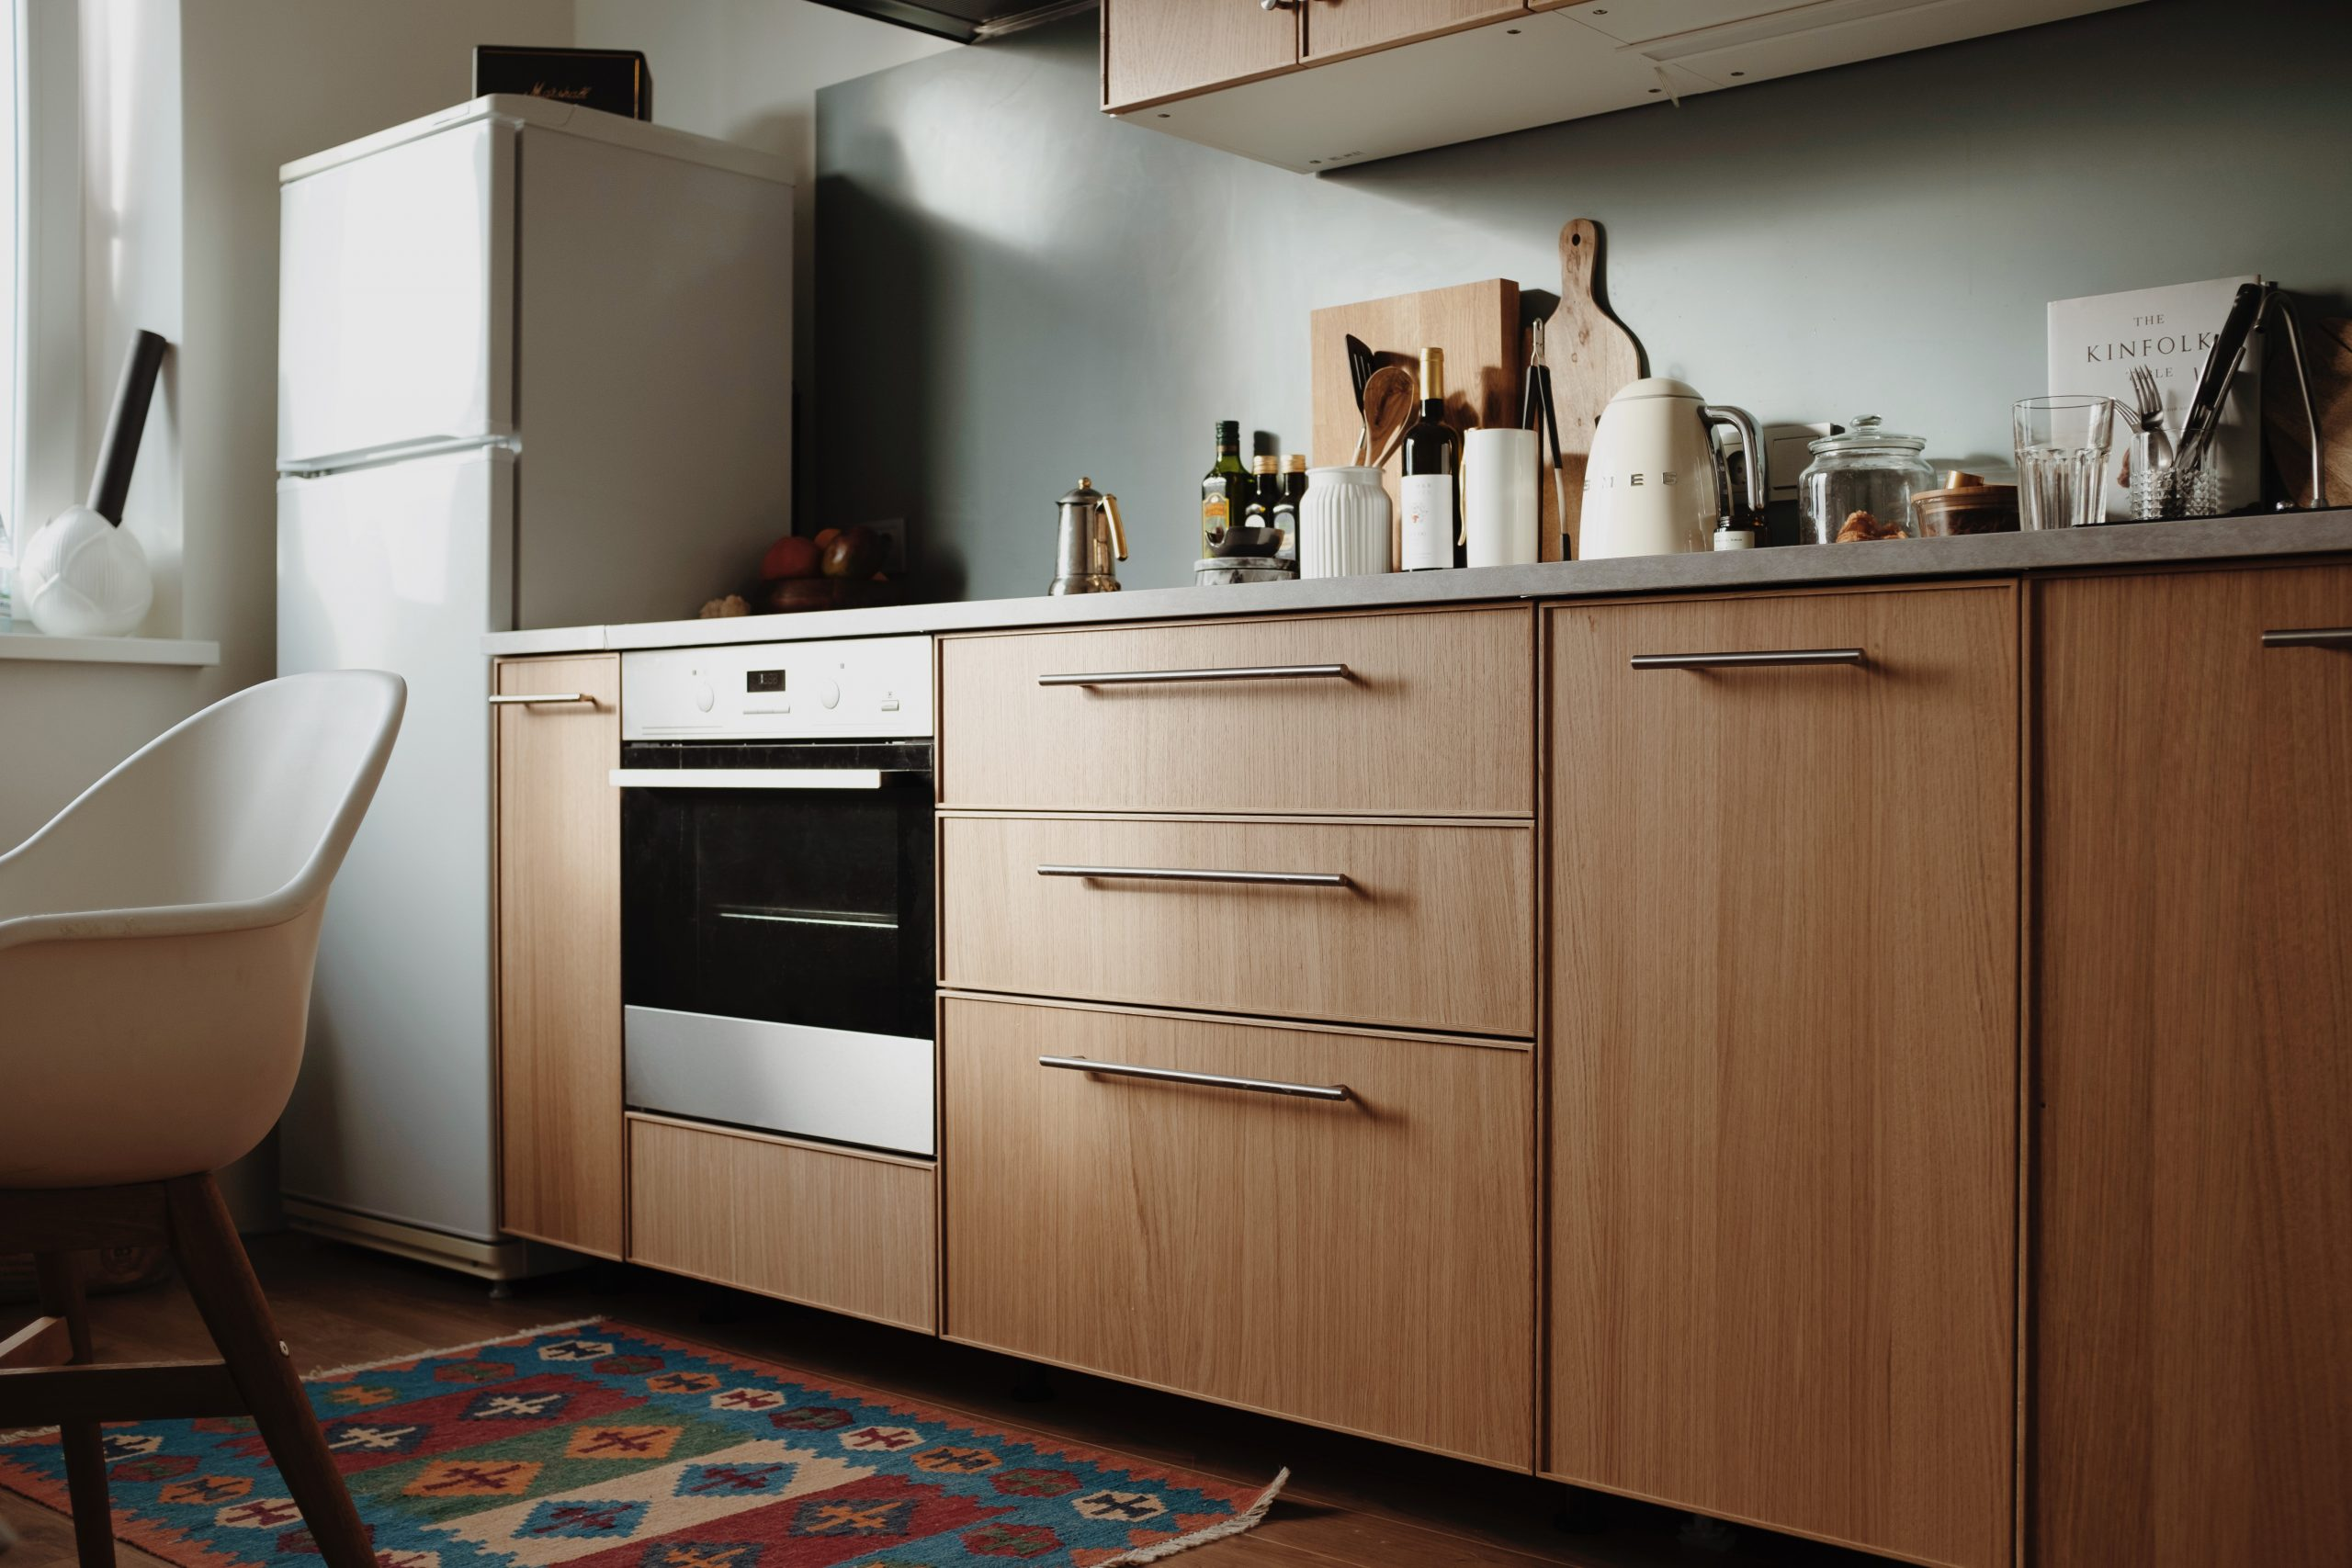 a kitchen sideboard with light brown cupboards and drawers, and a built in oven; 5 Sure Signs It's Time To Remodel Your Kitchen